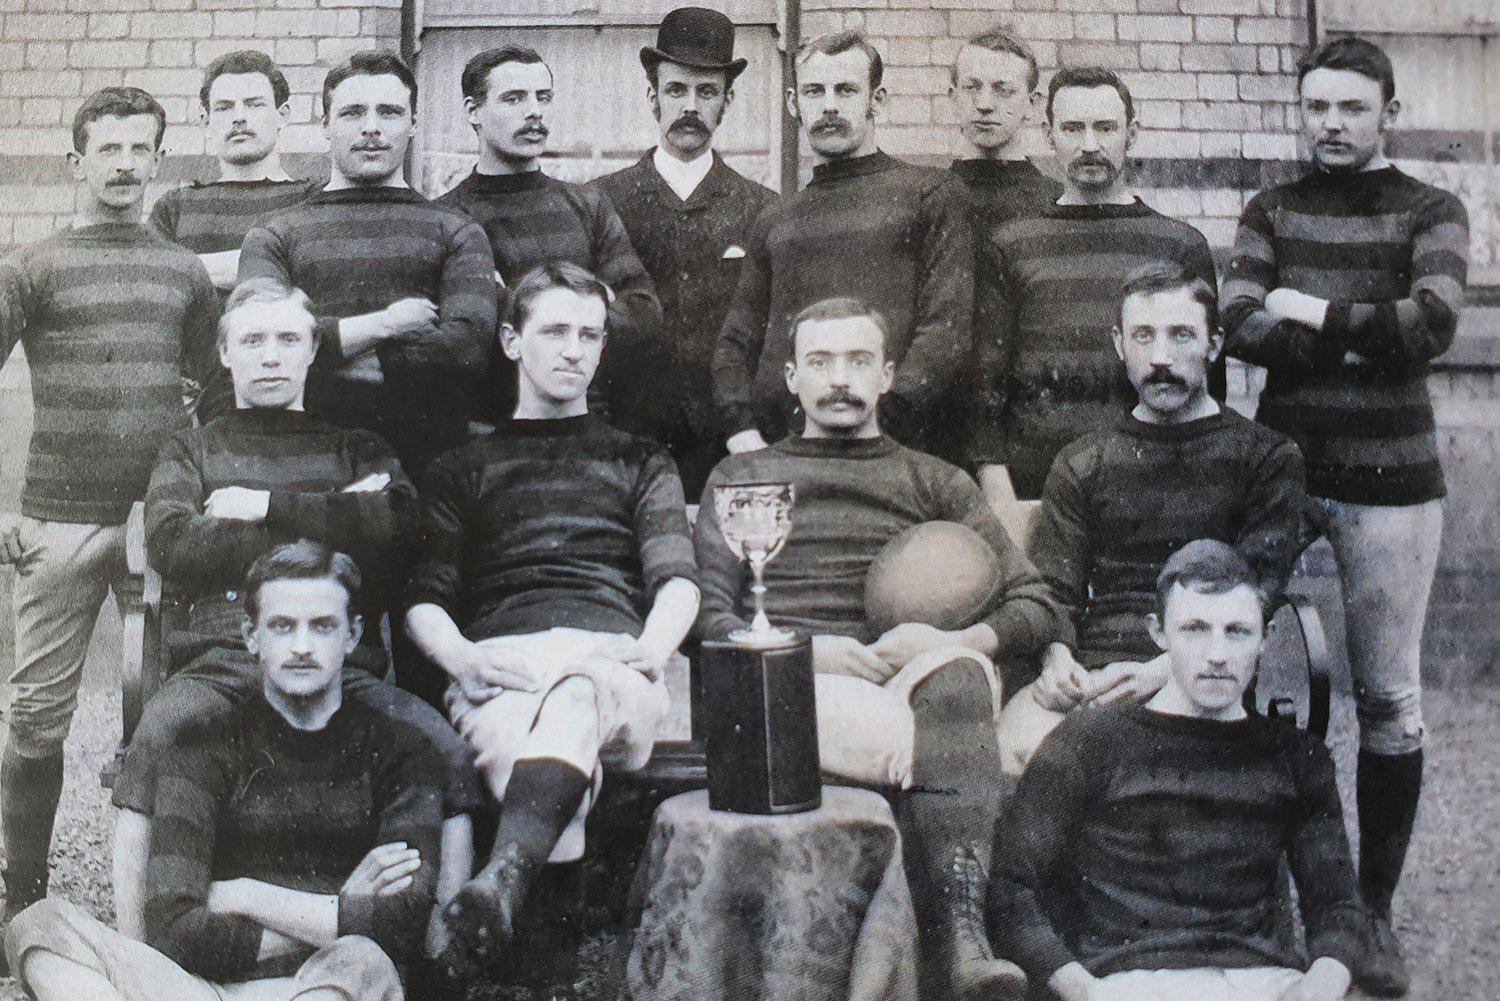 Captains Collection 1887 team